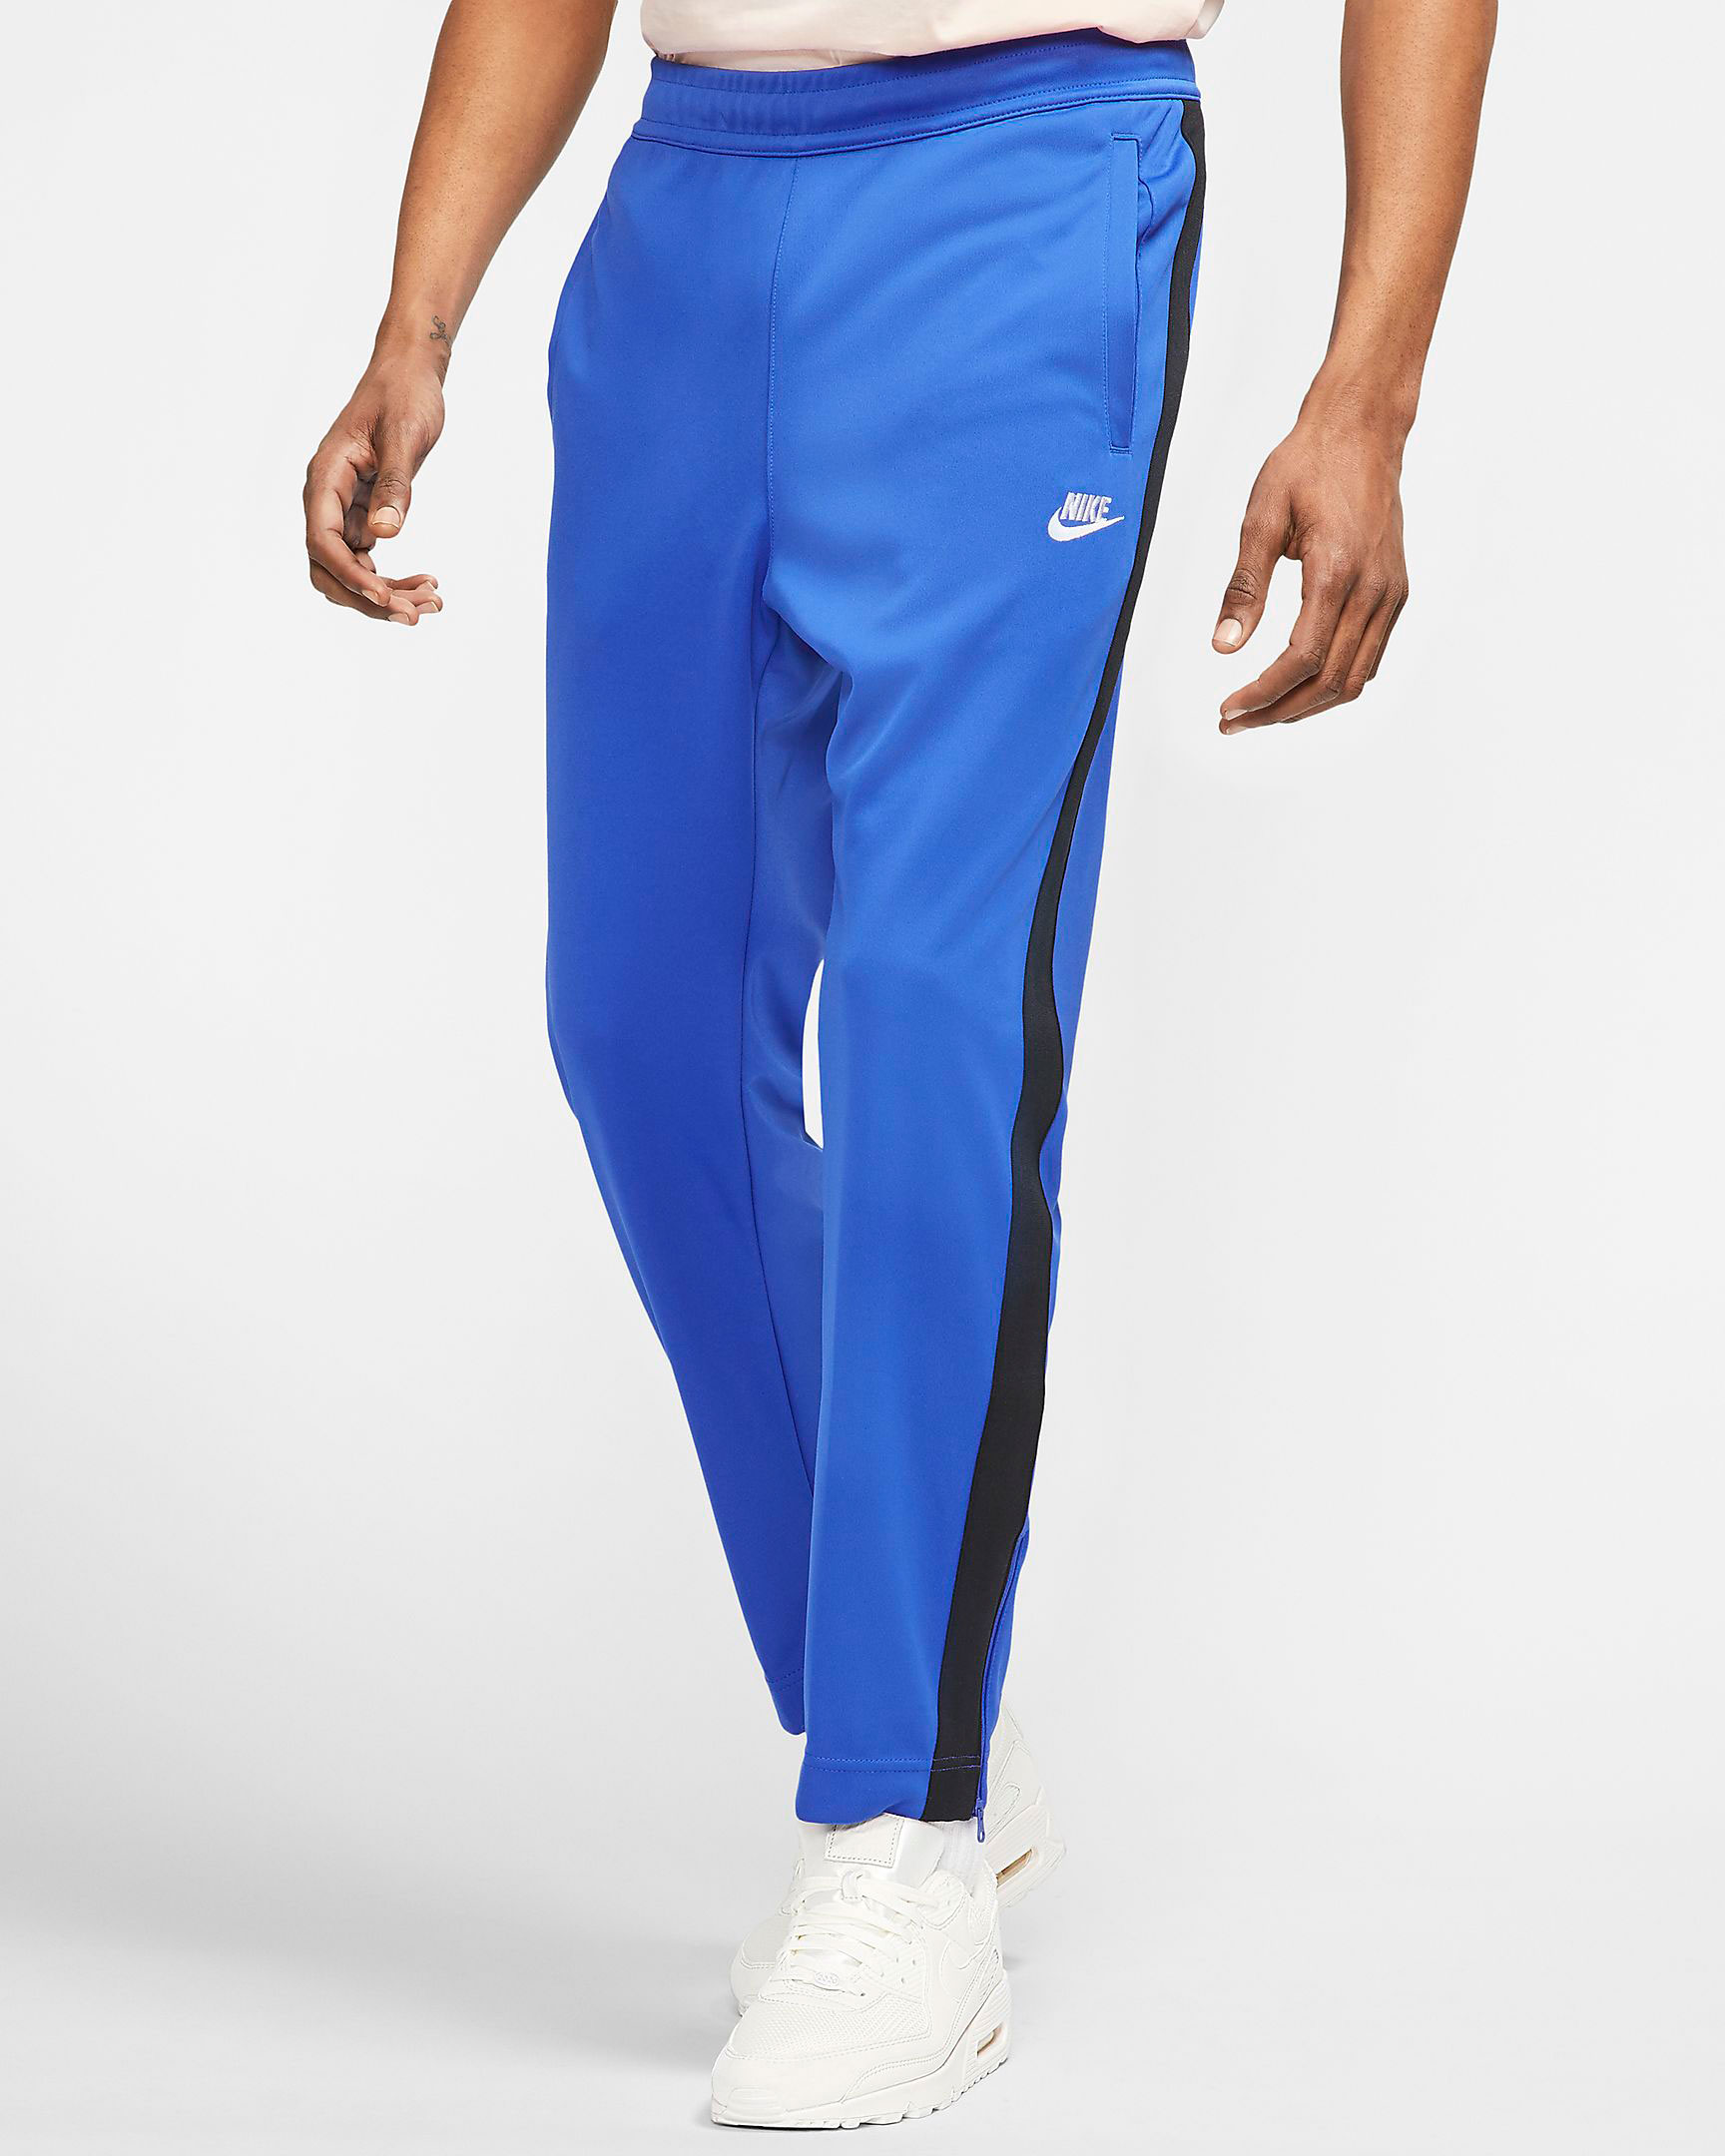 jordan-1-game-royal-toe-nike-pant-match-1